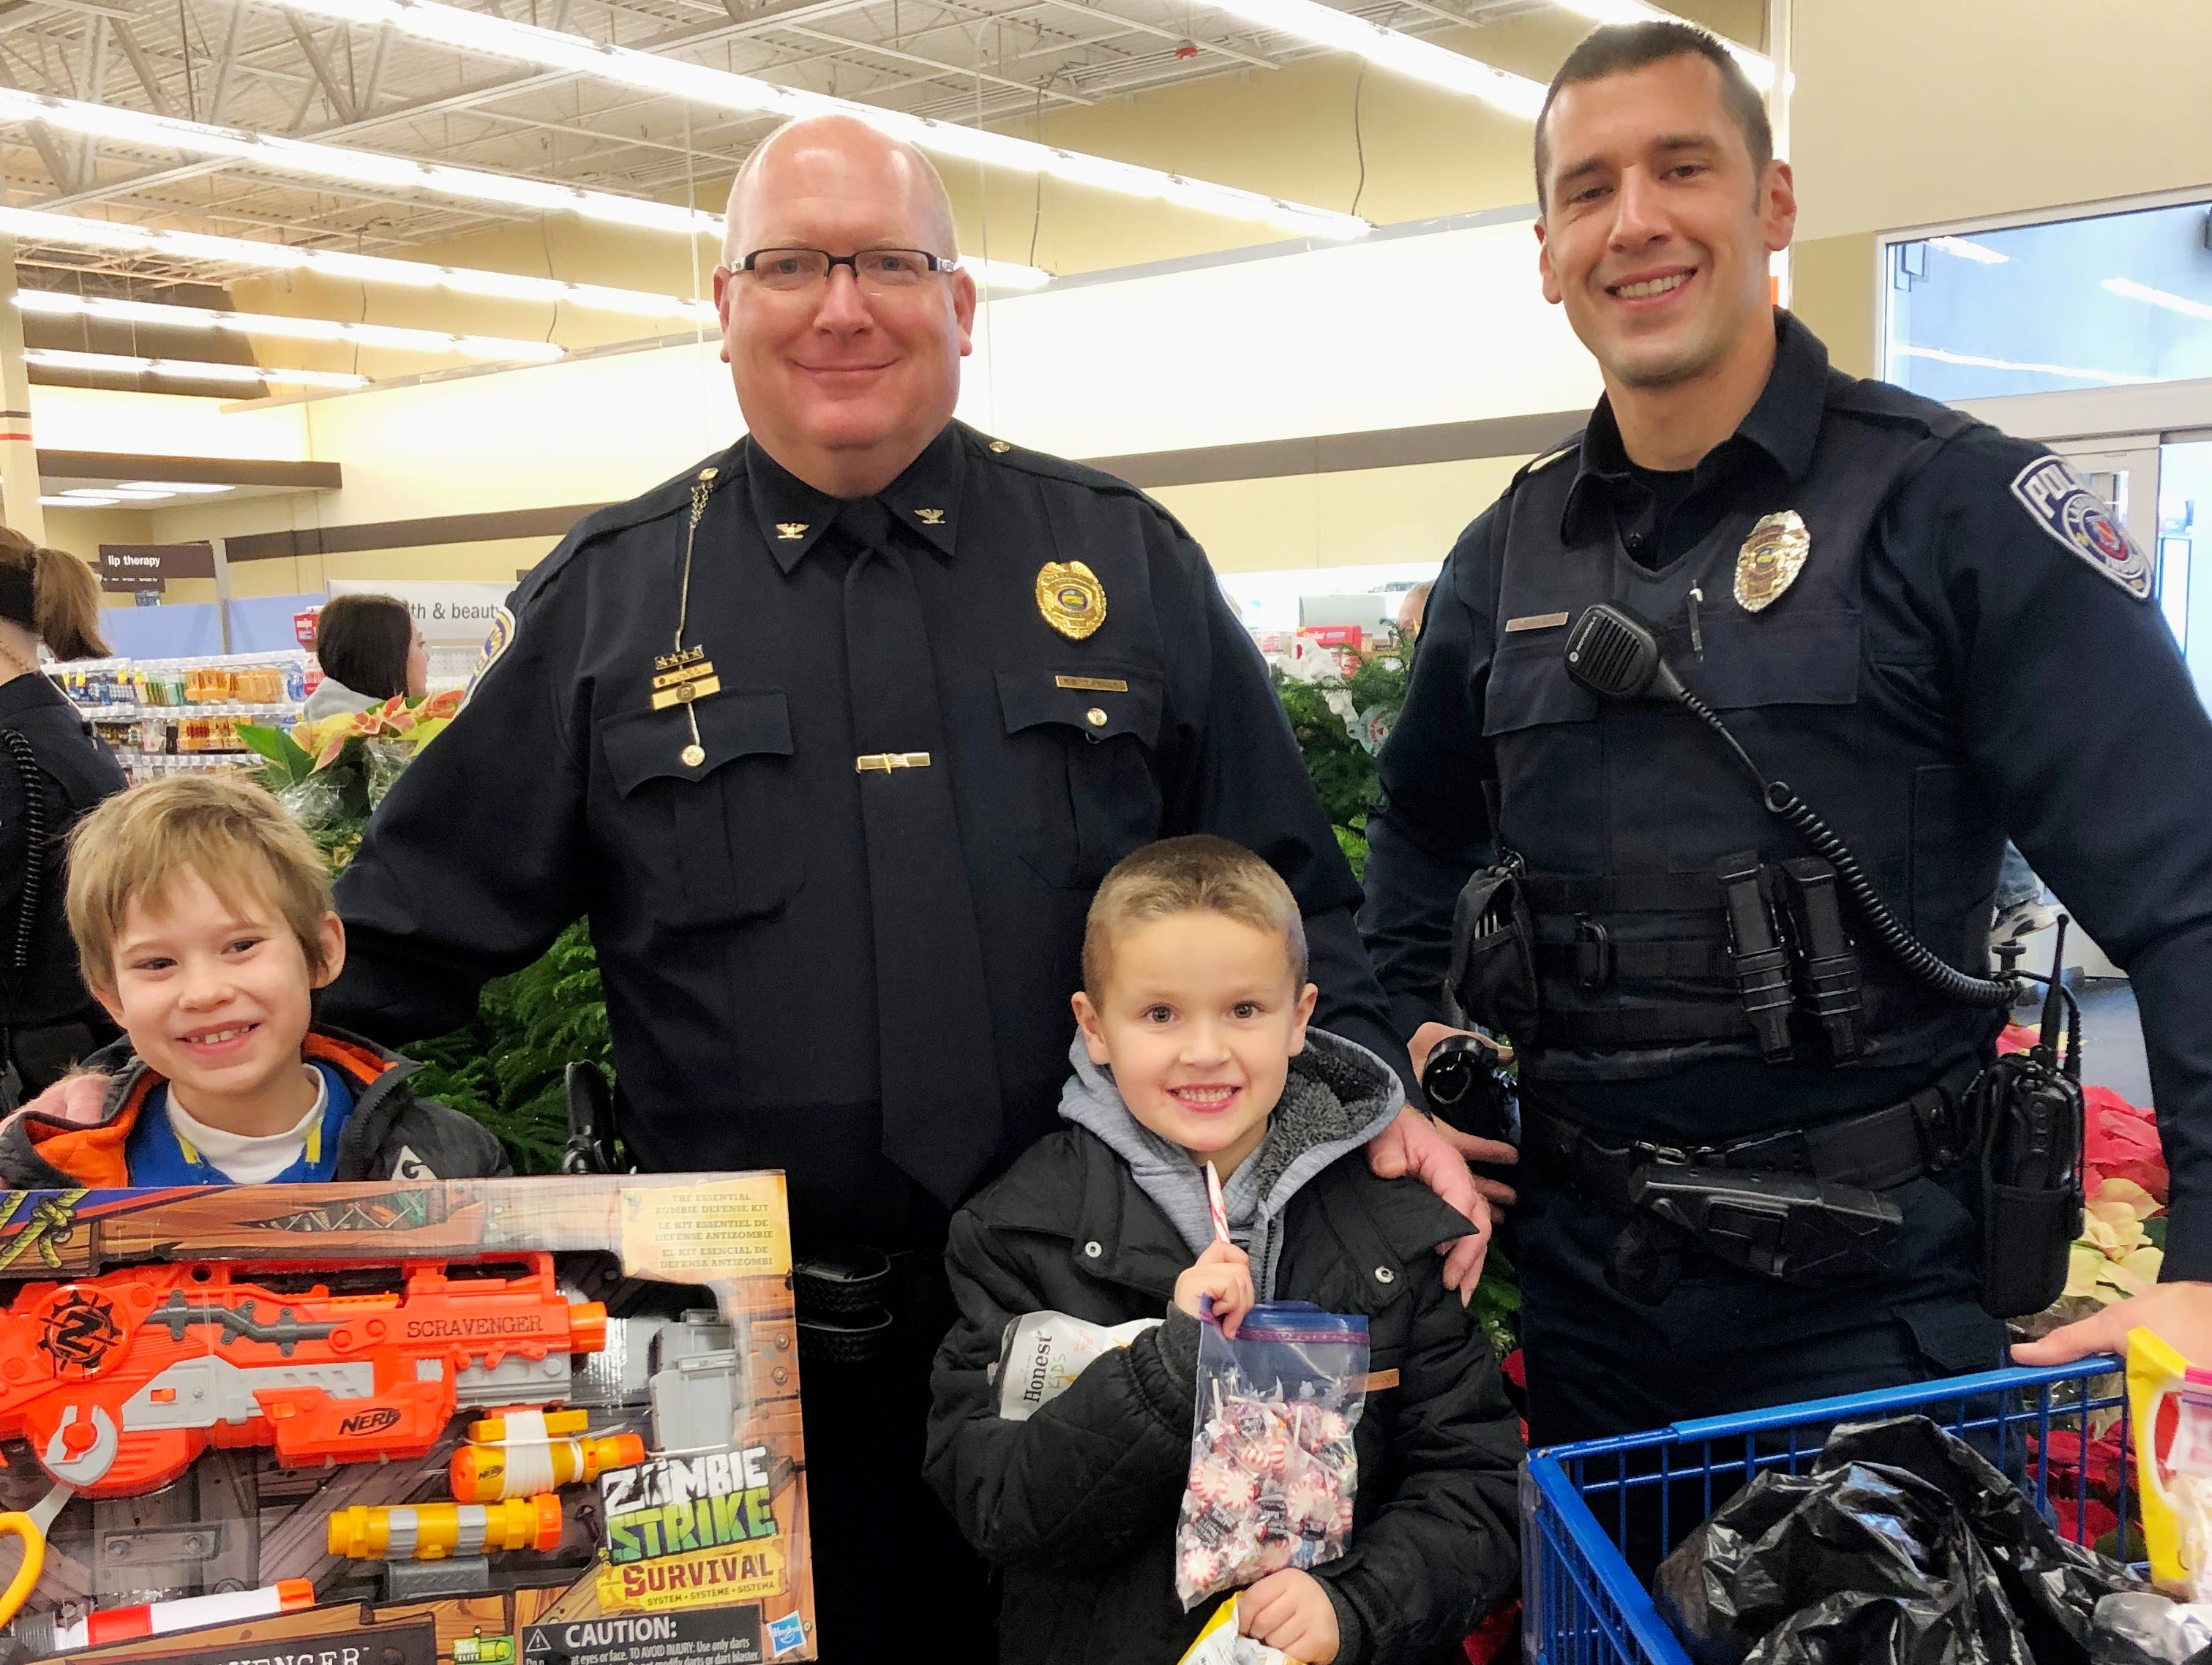 Area children take part in Shop With a Cop Saturday, December 8, in Lafayette. According to event co-coordinator Lindsey Martin, about 50 children ranging in age from infants to high school, paired up with officers from multiple local law enforcement agencies for the program. The event is hosted FOP Loge 49, which serves all of the officers in the Tippecanoe County area.